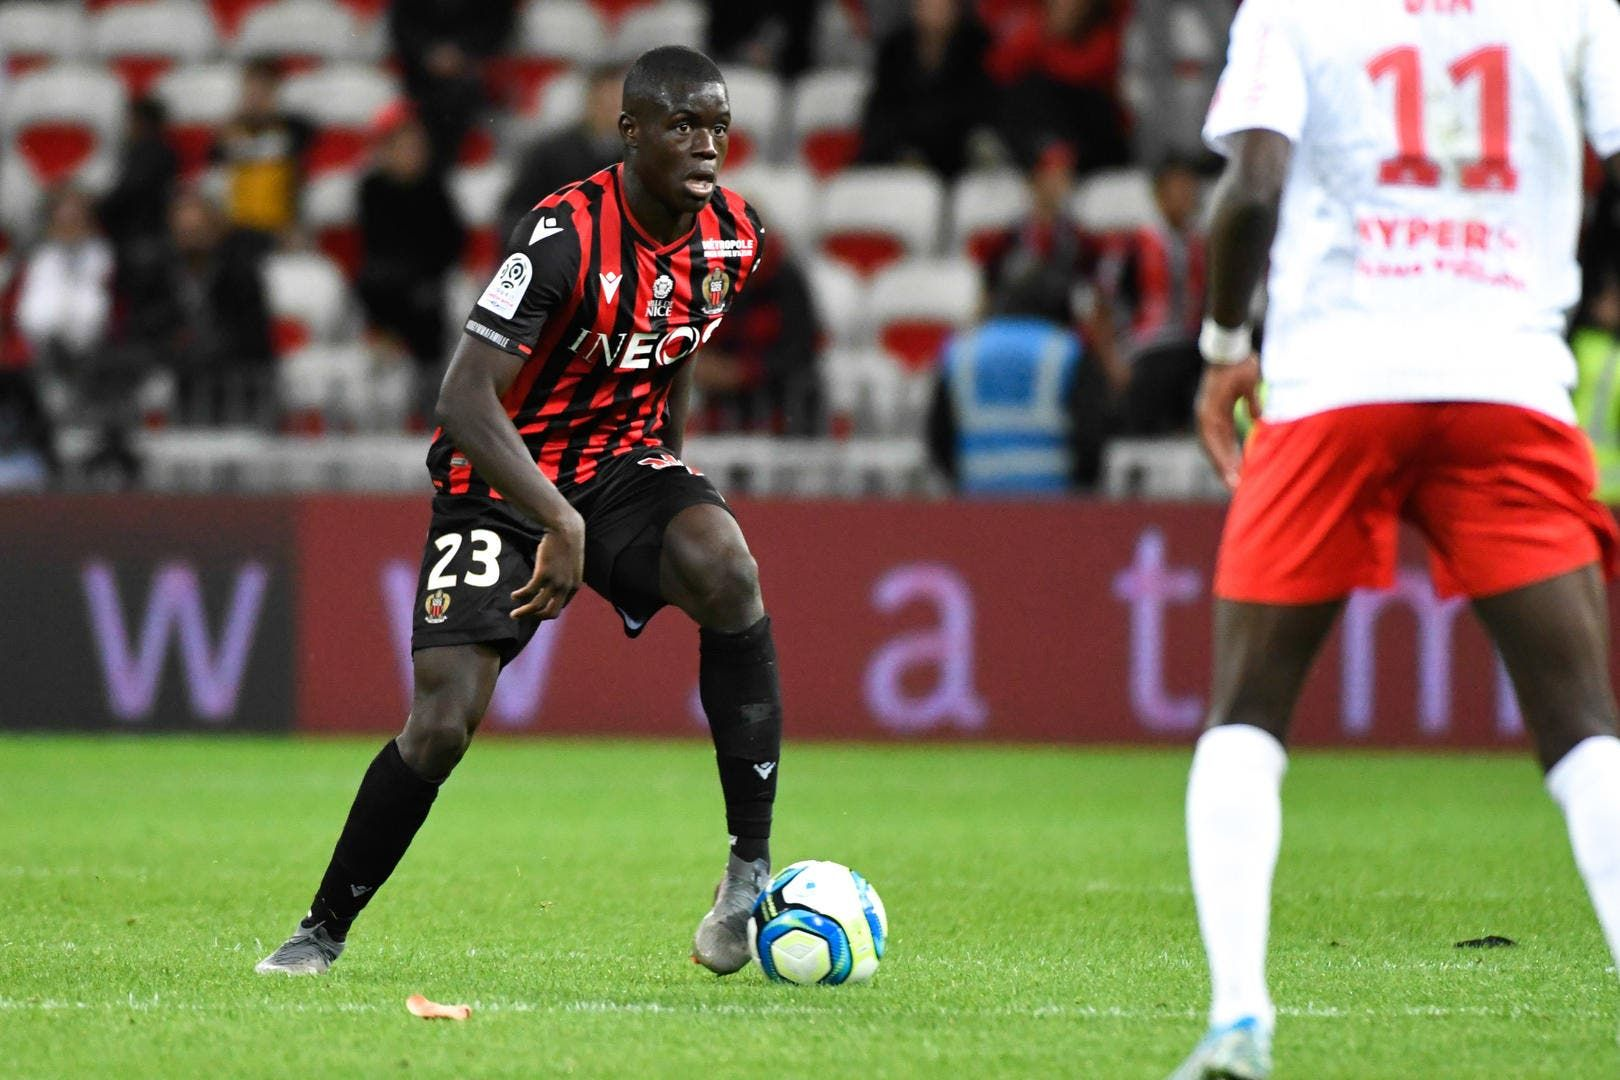 Chelsea S Offer To Malang Sarr Is 5 Year Deal As Blues Look To Profit On Potential Chelsea News